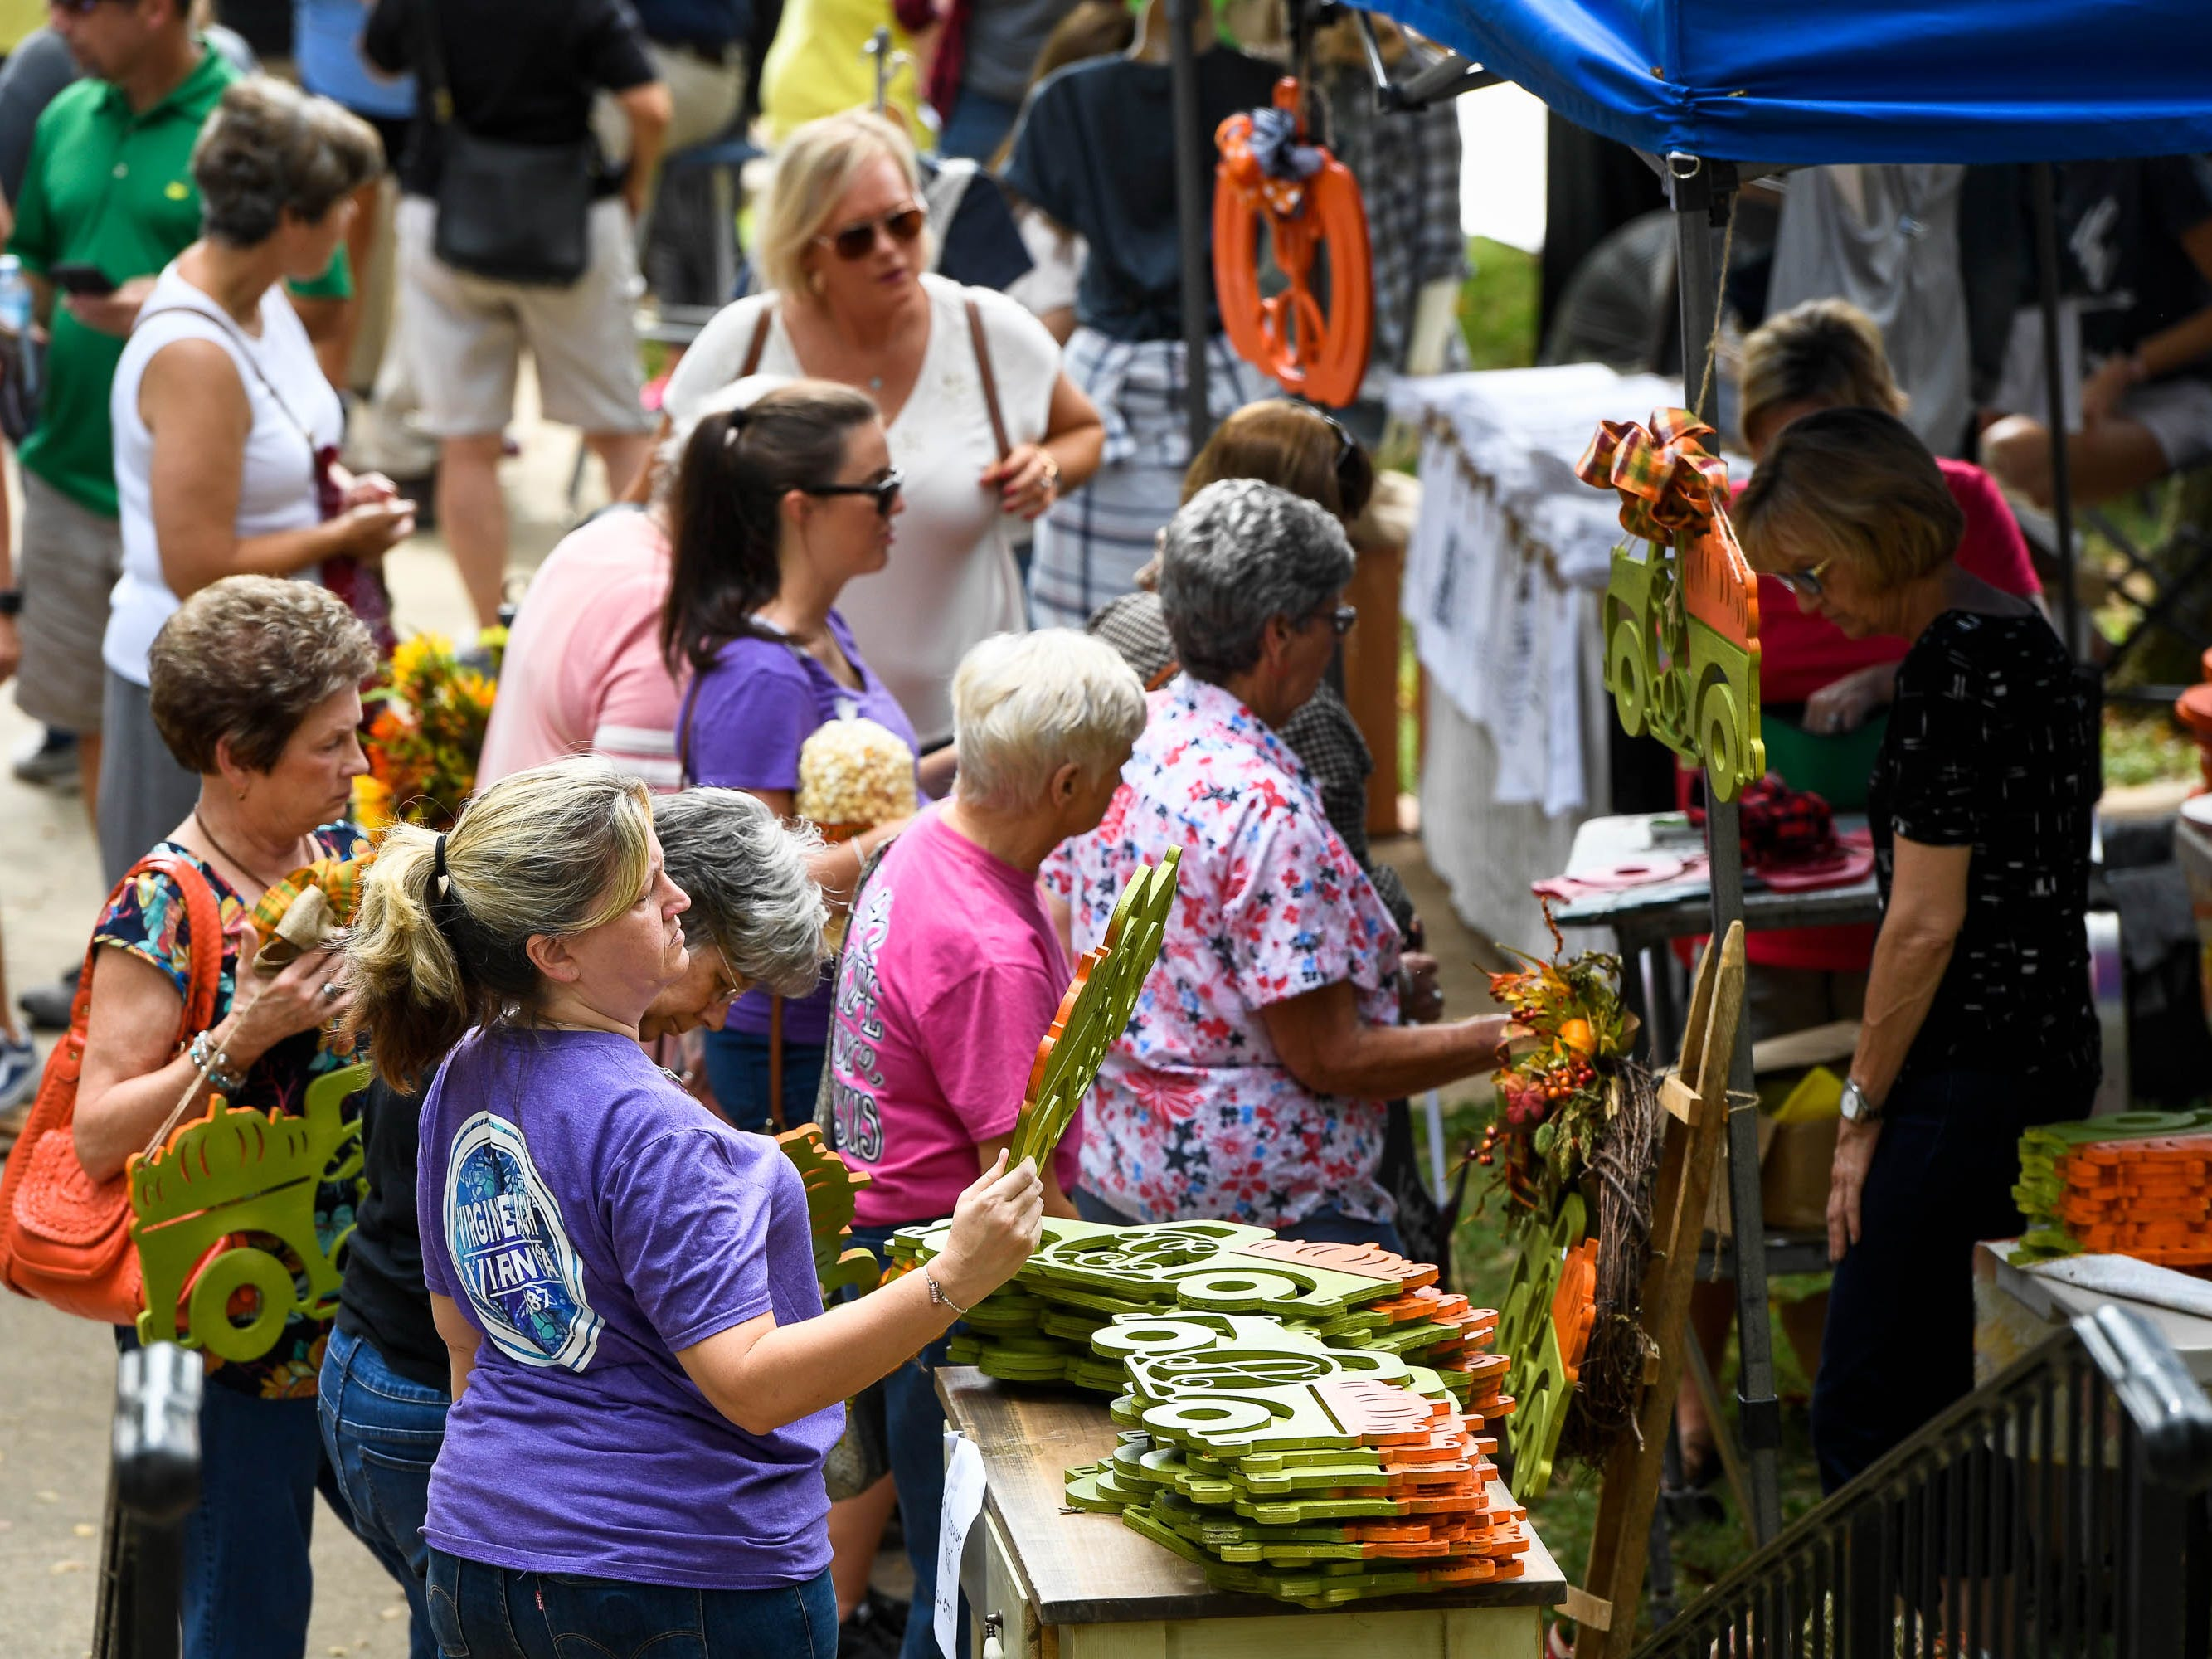 Eager crafts shoppers pour through the vendors booths at the Henderson Lions Arts and Crafts festival held at Audubon State Park Saturday. The event, with nearly 100 vendors selling everything from seasonal florals to iron work, continues Sunday 10 a.m. to 4 p.m. October 6, 2018.